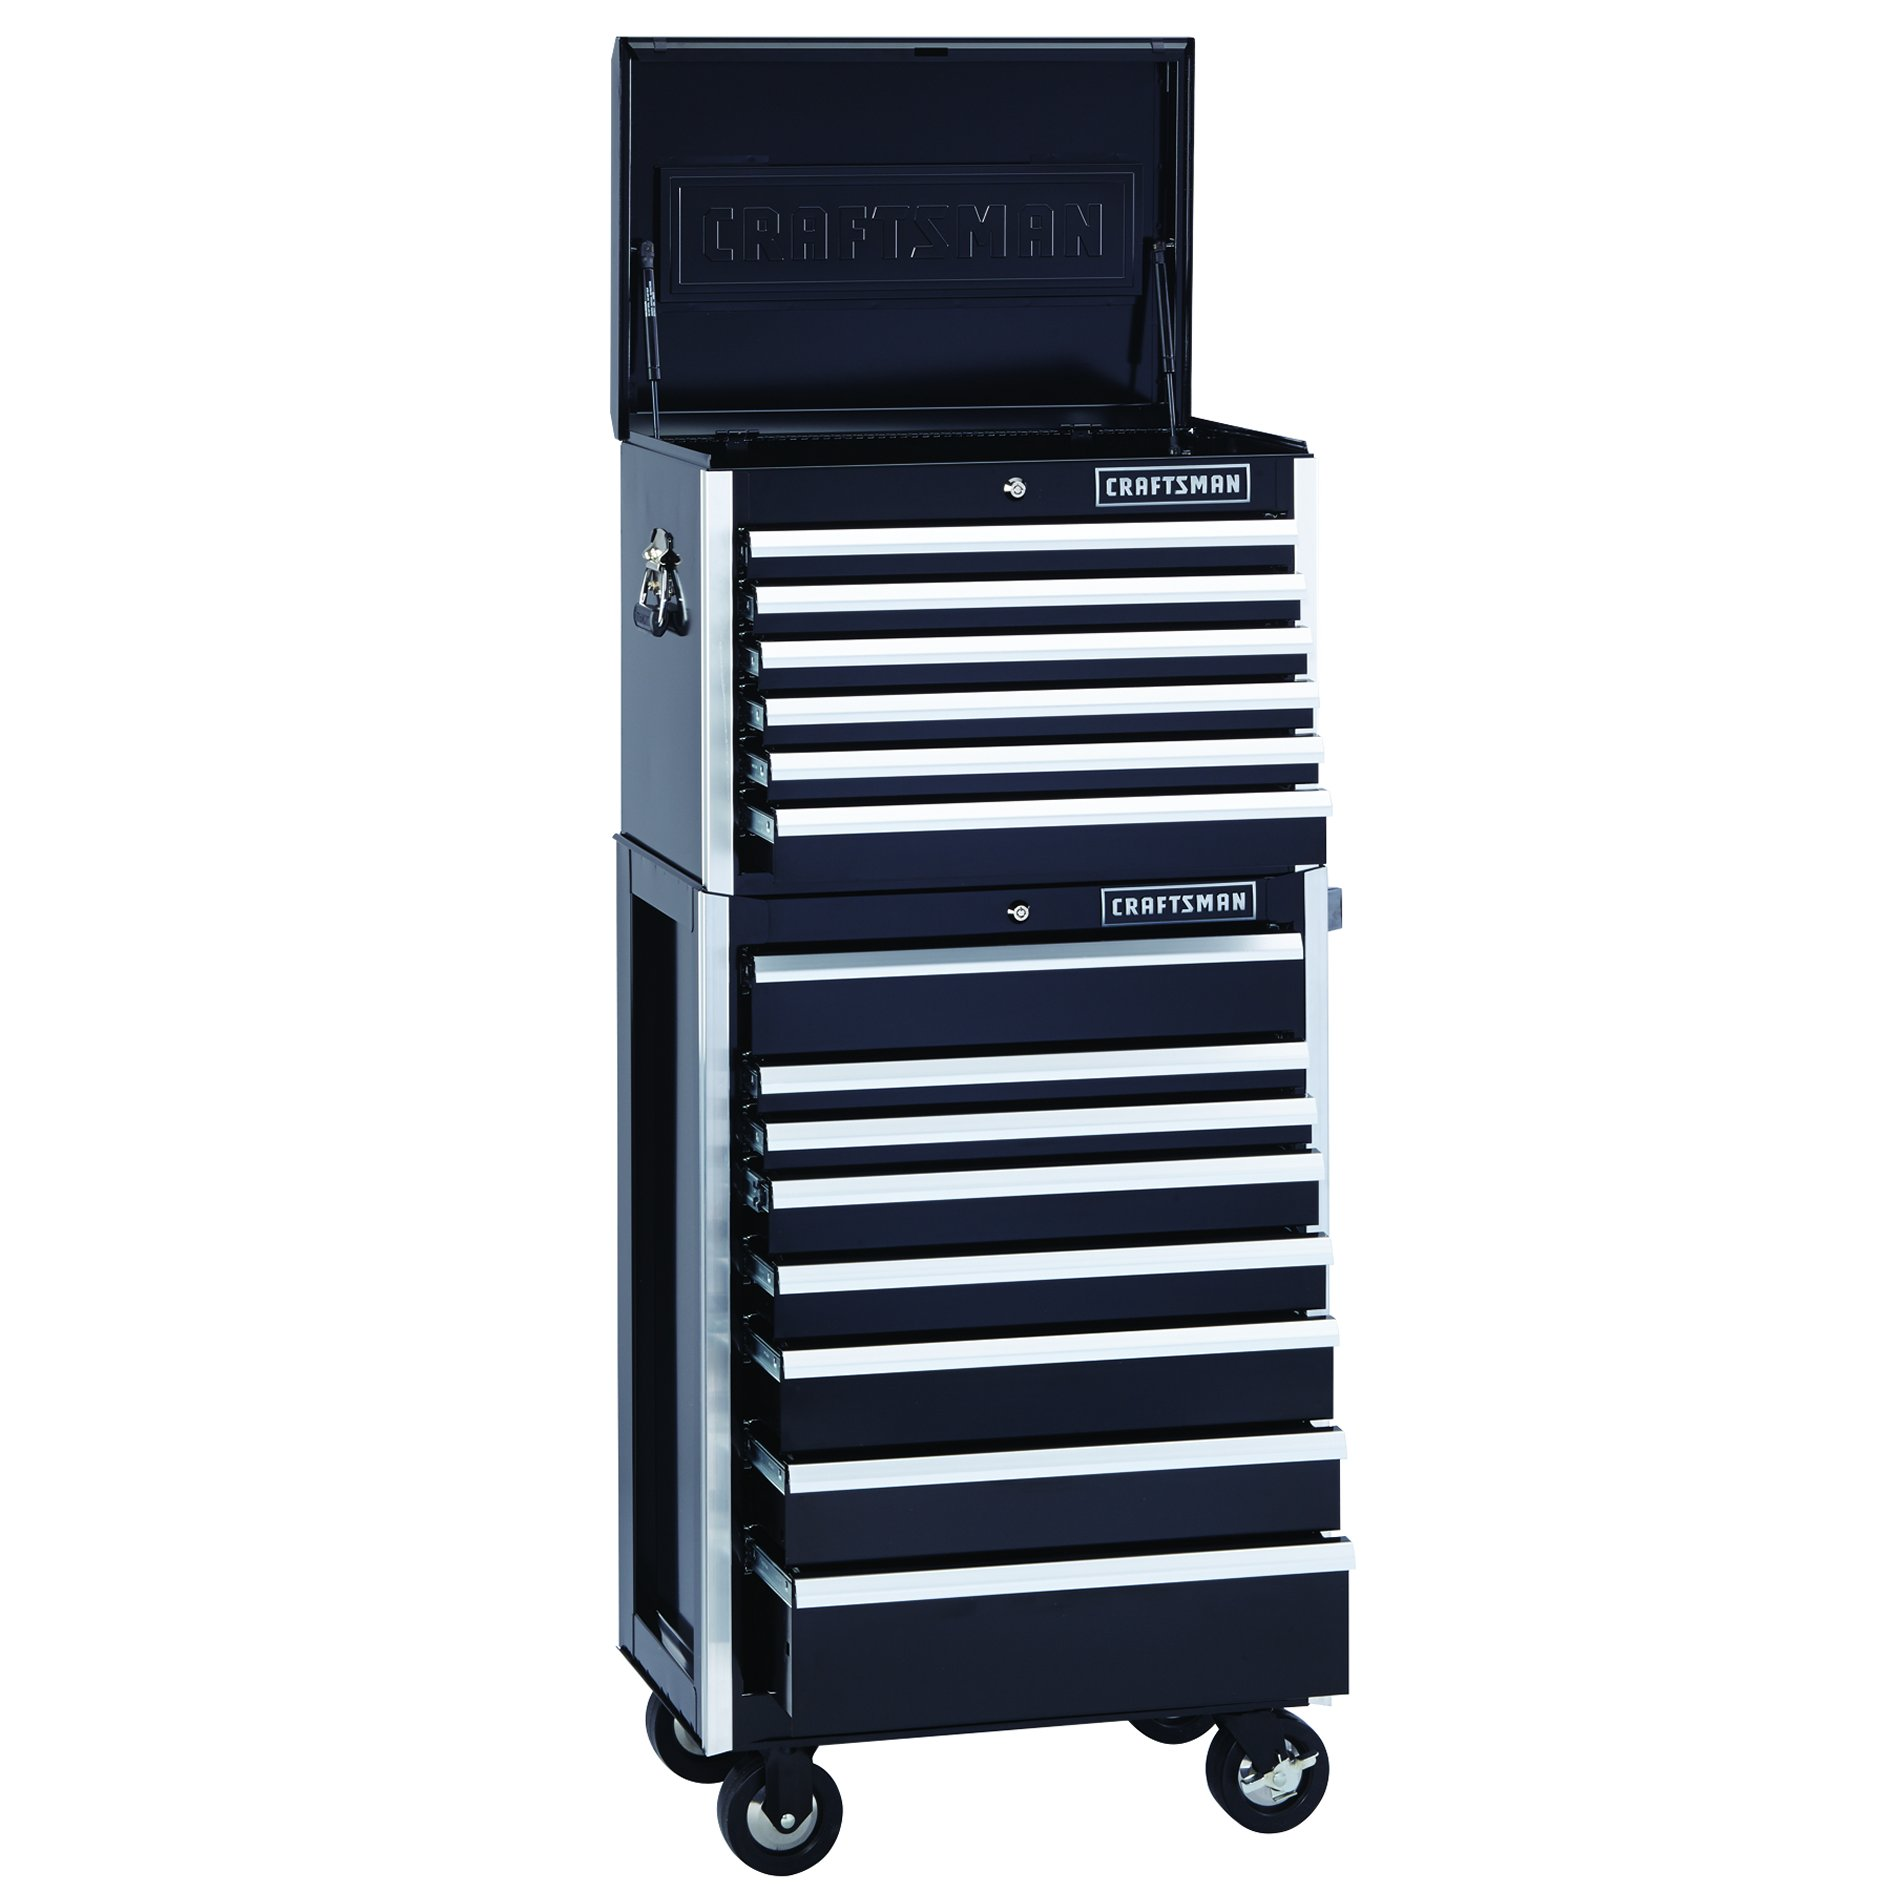 Craftsman EDGE Series 26-in. 8-Drawer Premium Heavy-Duty Ball-Bearing Rolling Cabinet - Black